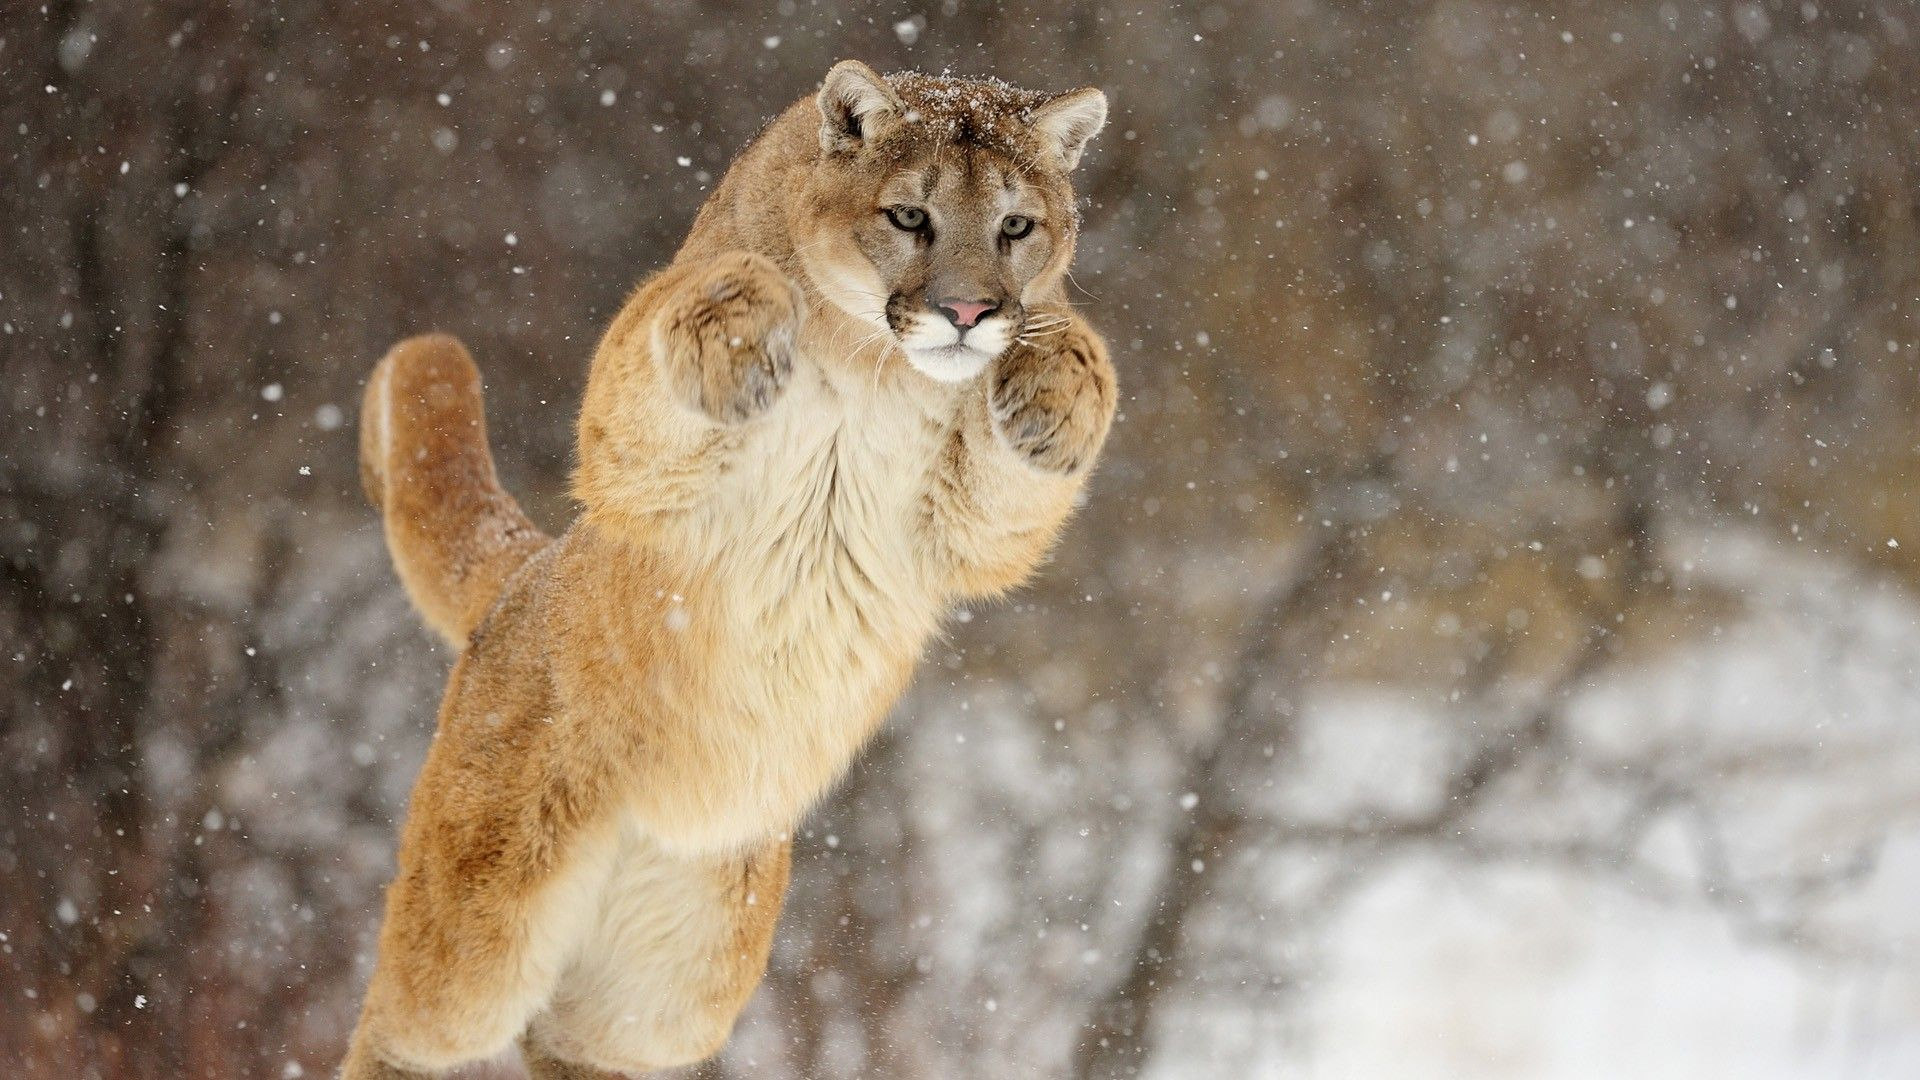 Mountain Lion Photo Free Download By Perceval Cluett